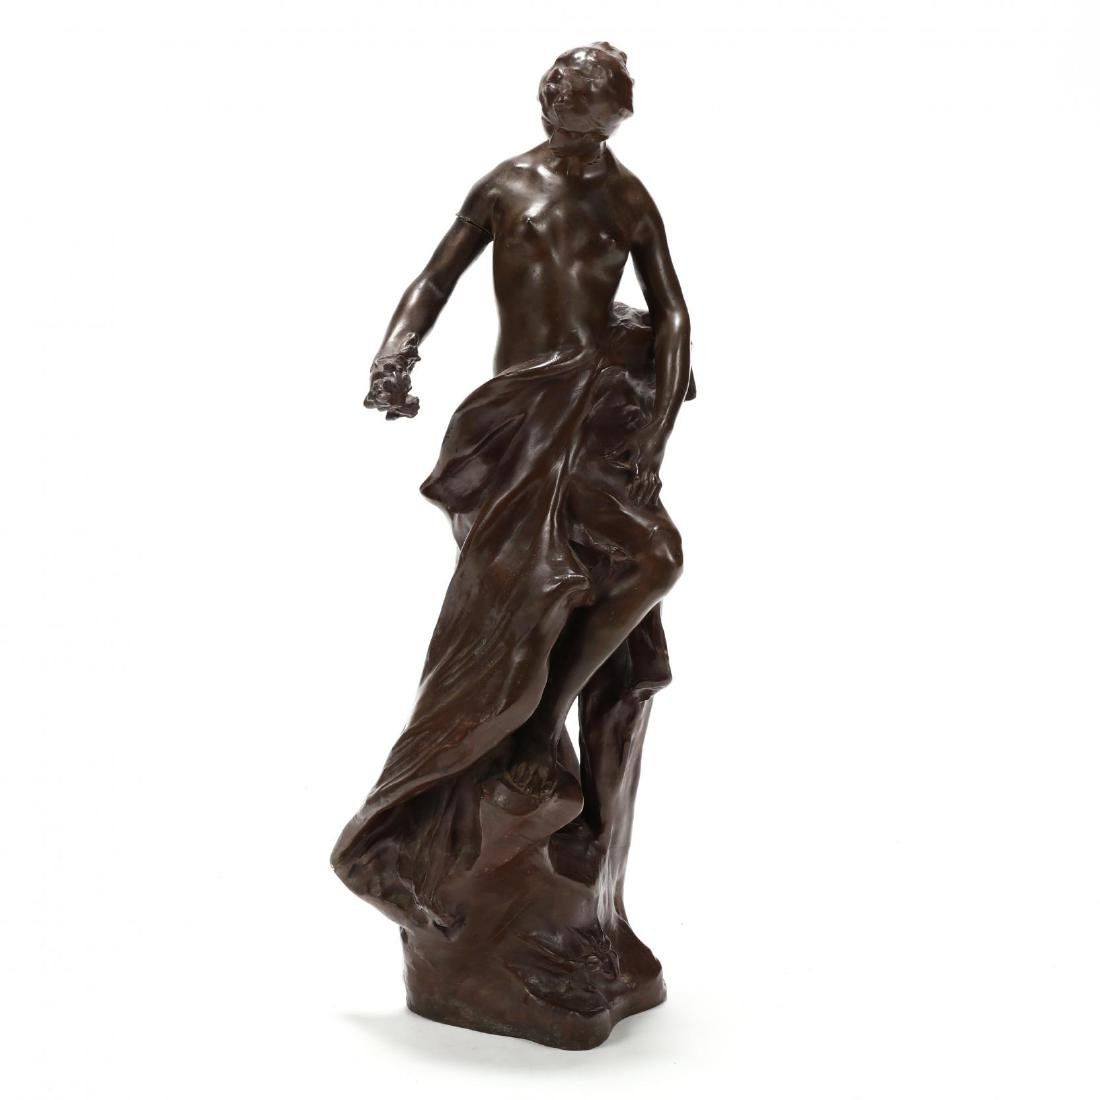 Pierre Devaux (French 1865-1938), Bronze Sculpture of a